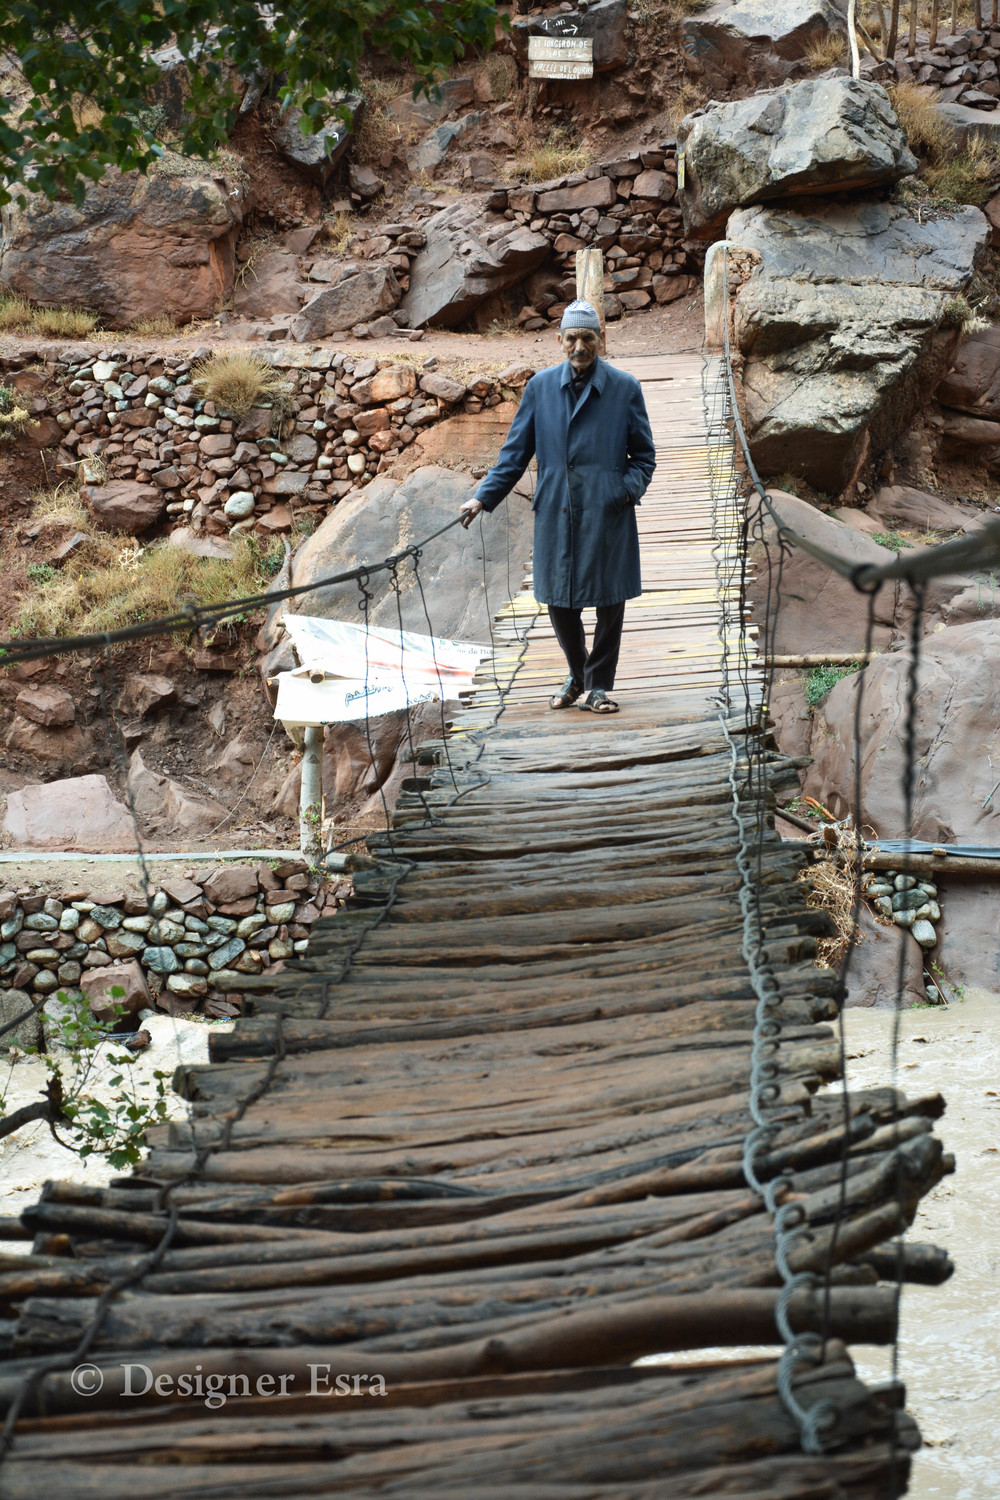 Moroccan Wooden Bridge